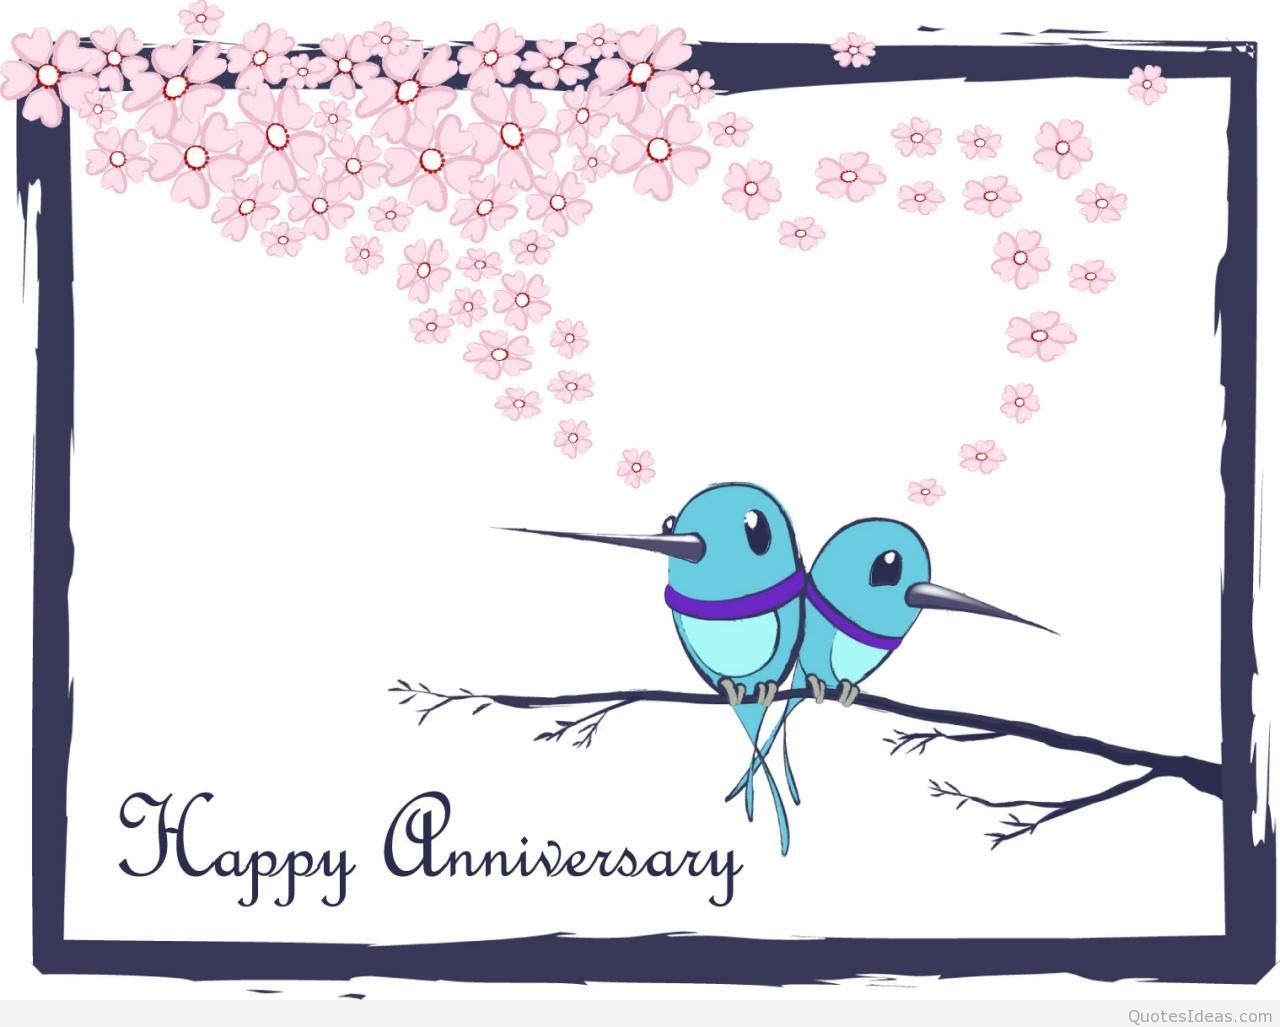 Happy Anniversary Wishes Cards Sayings Cartoons 2015 2016 2019